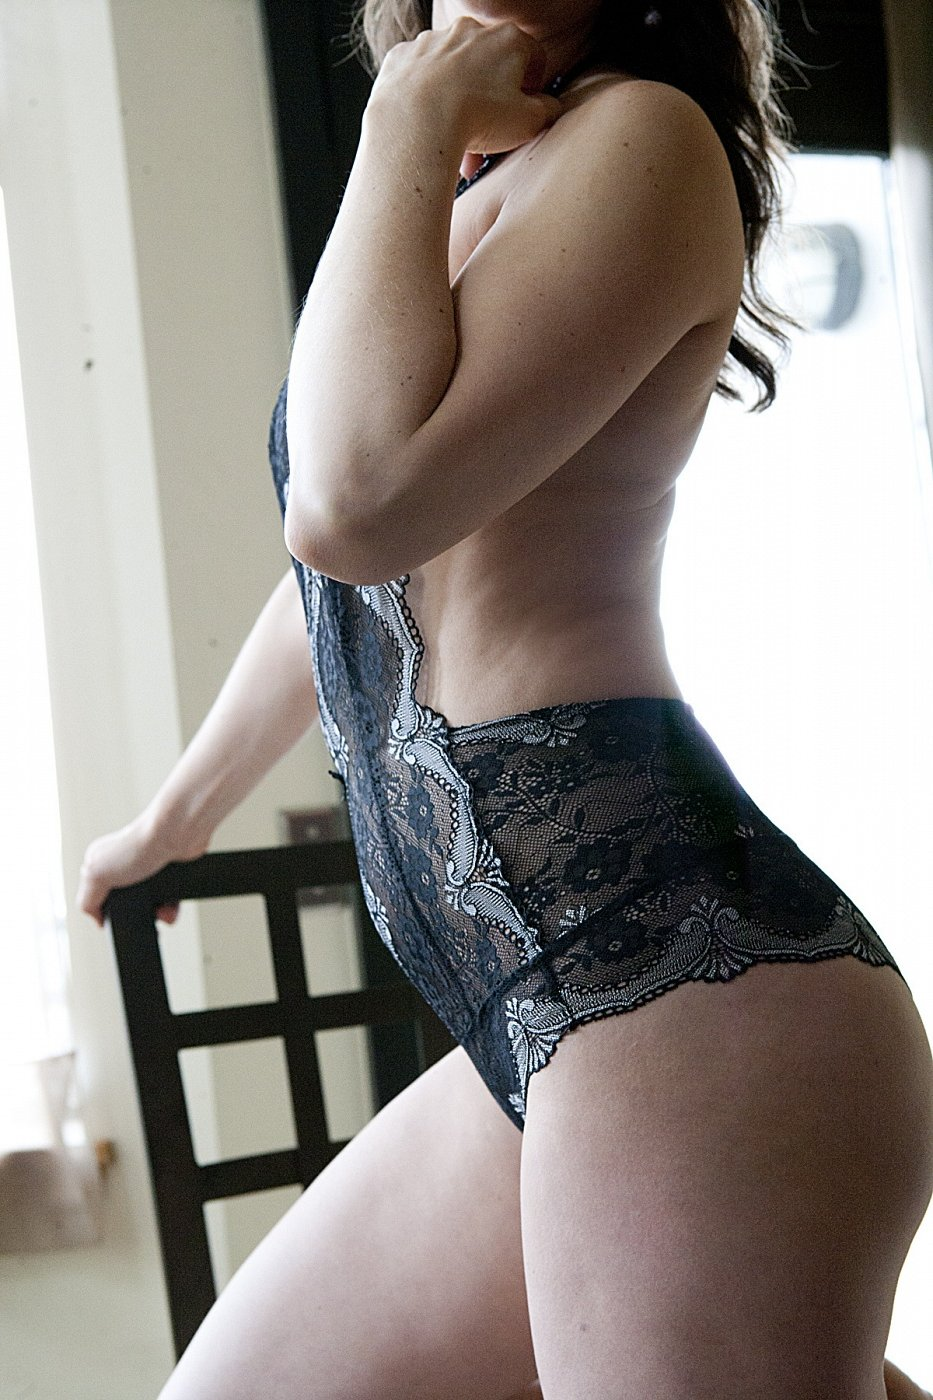 nuru massage in Arlington Washington